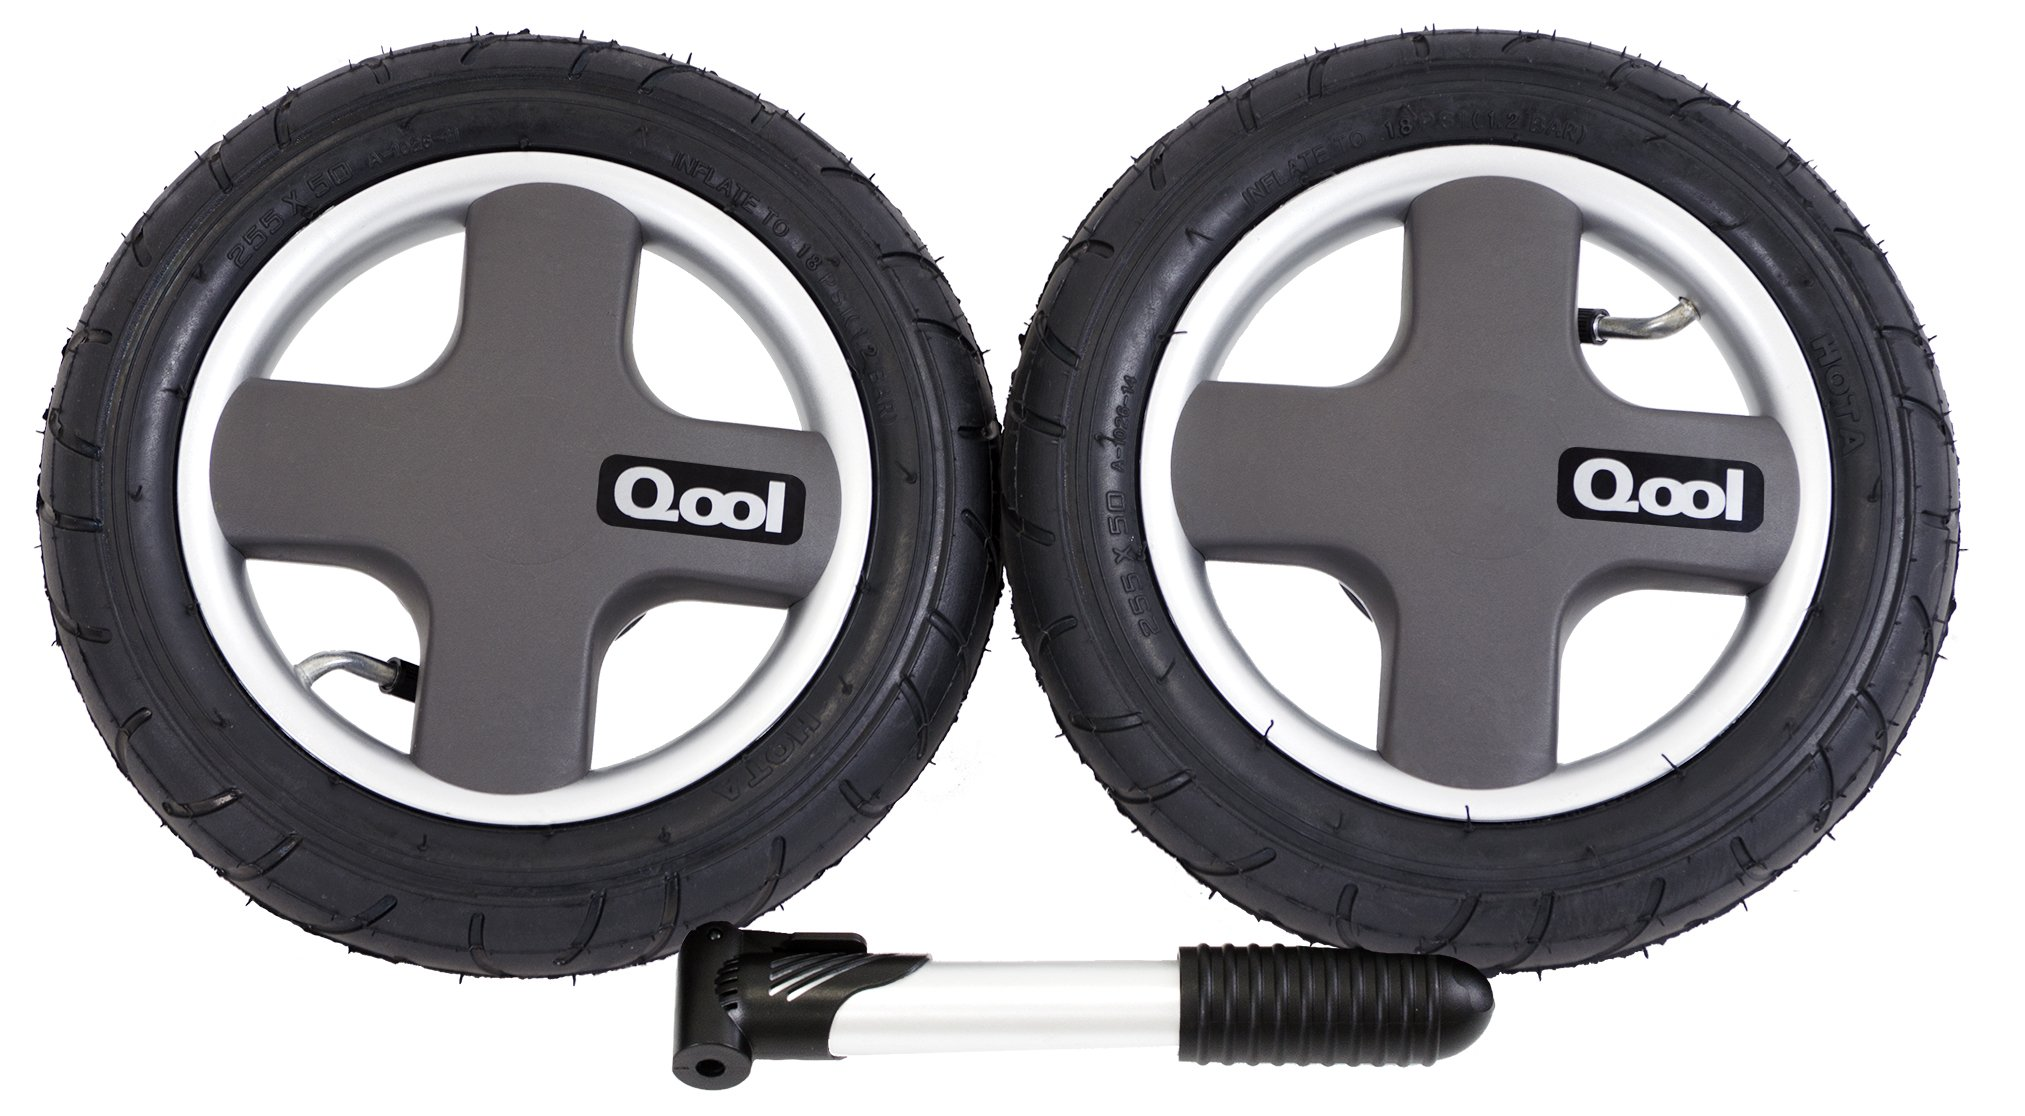 Joovy Qool Pneumatic Rear Wheels and Tire Pump, Black (Discontinued by Manufacturer)